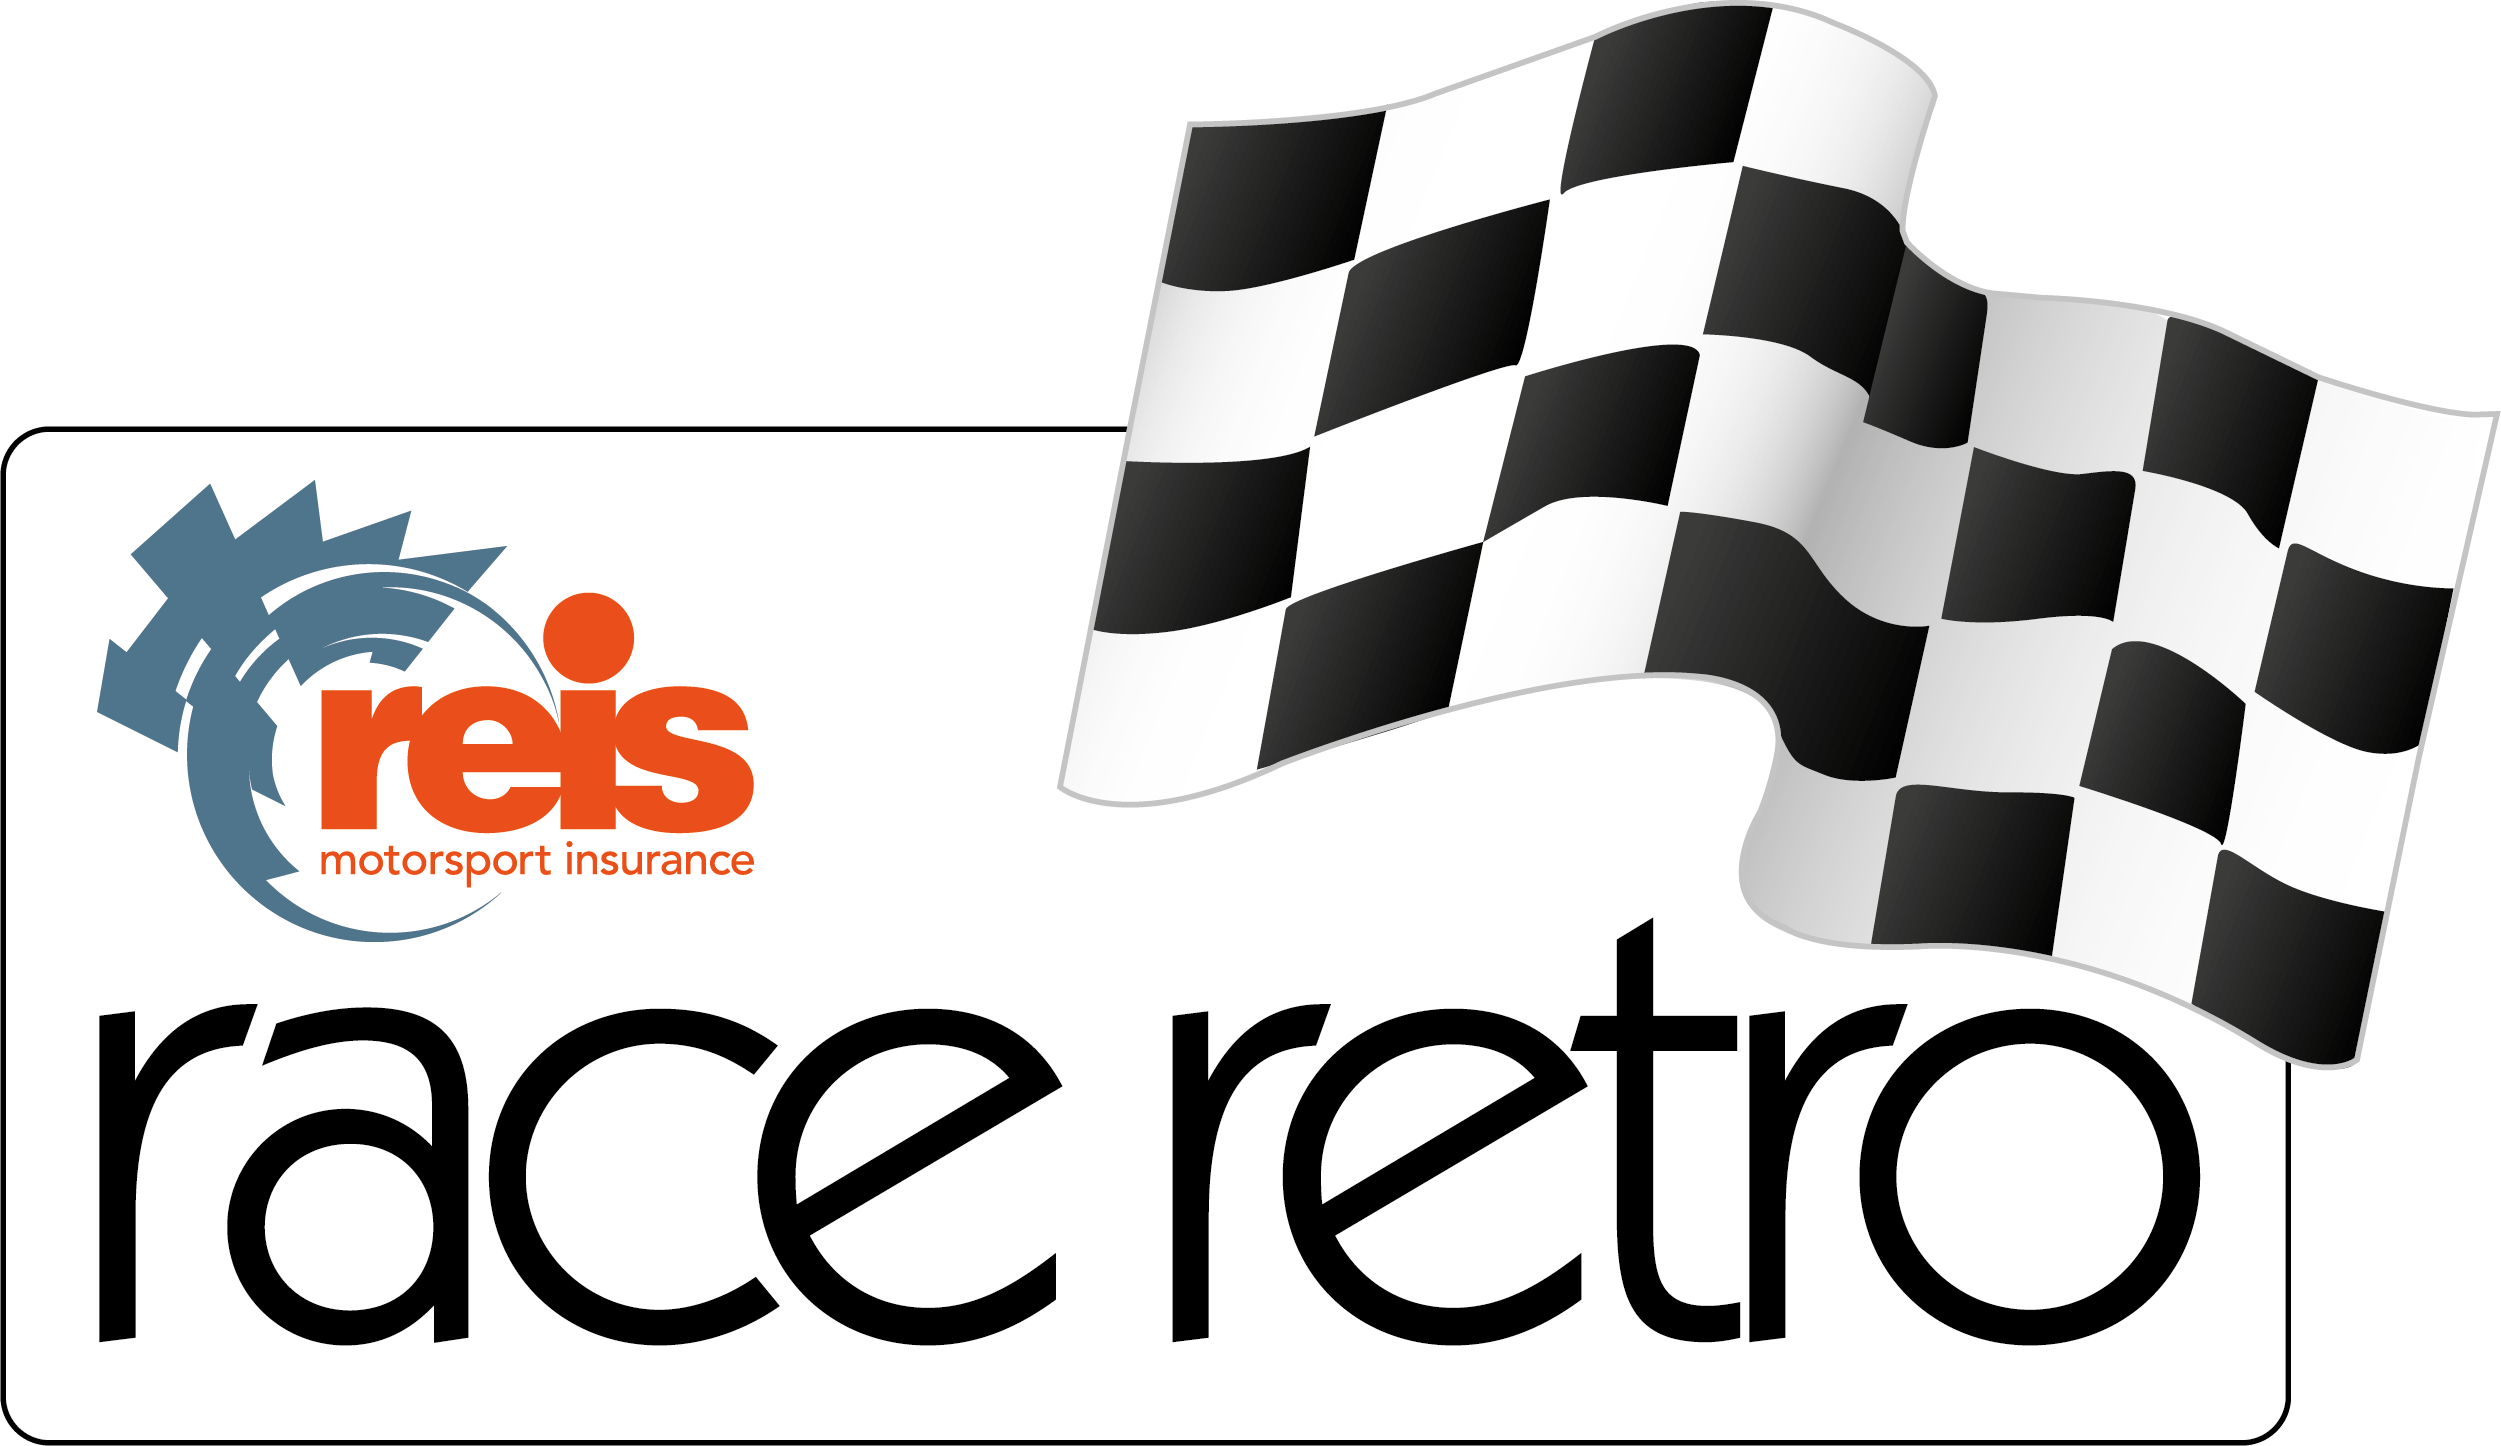 Reis Race Retro logo with chequered flag